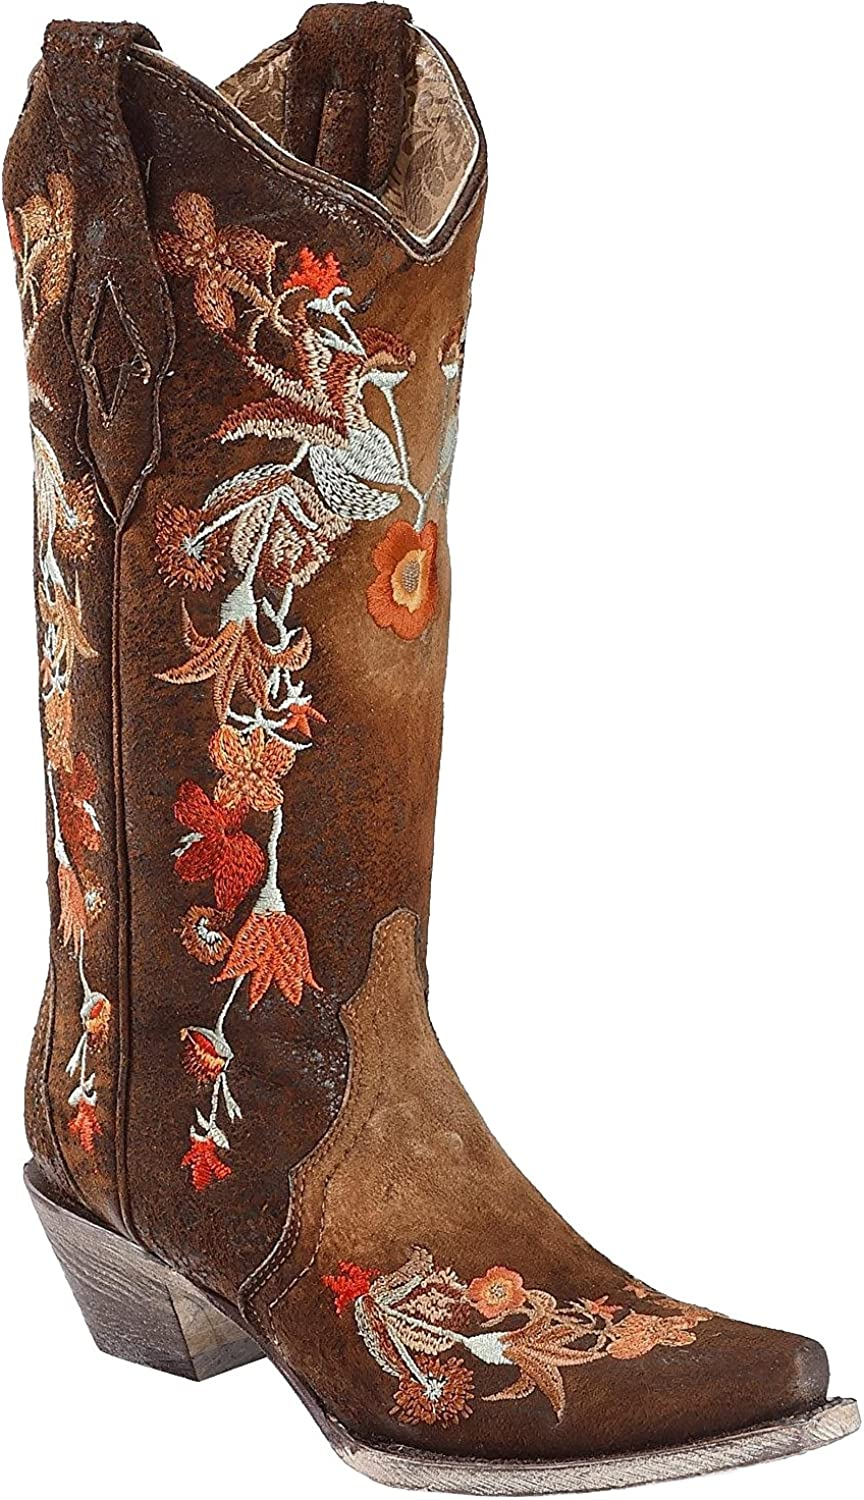 CORRAL Women's Lindsey Floral Embroidery Leather Cowgirl Boots - Chocolate